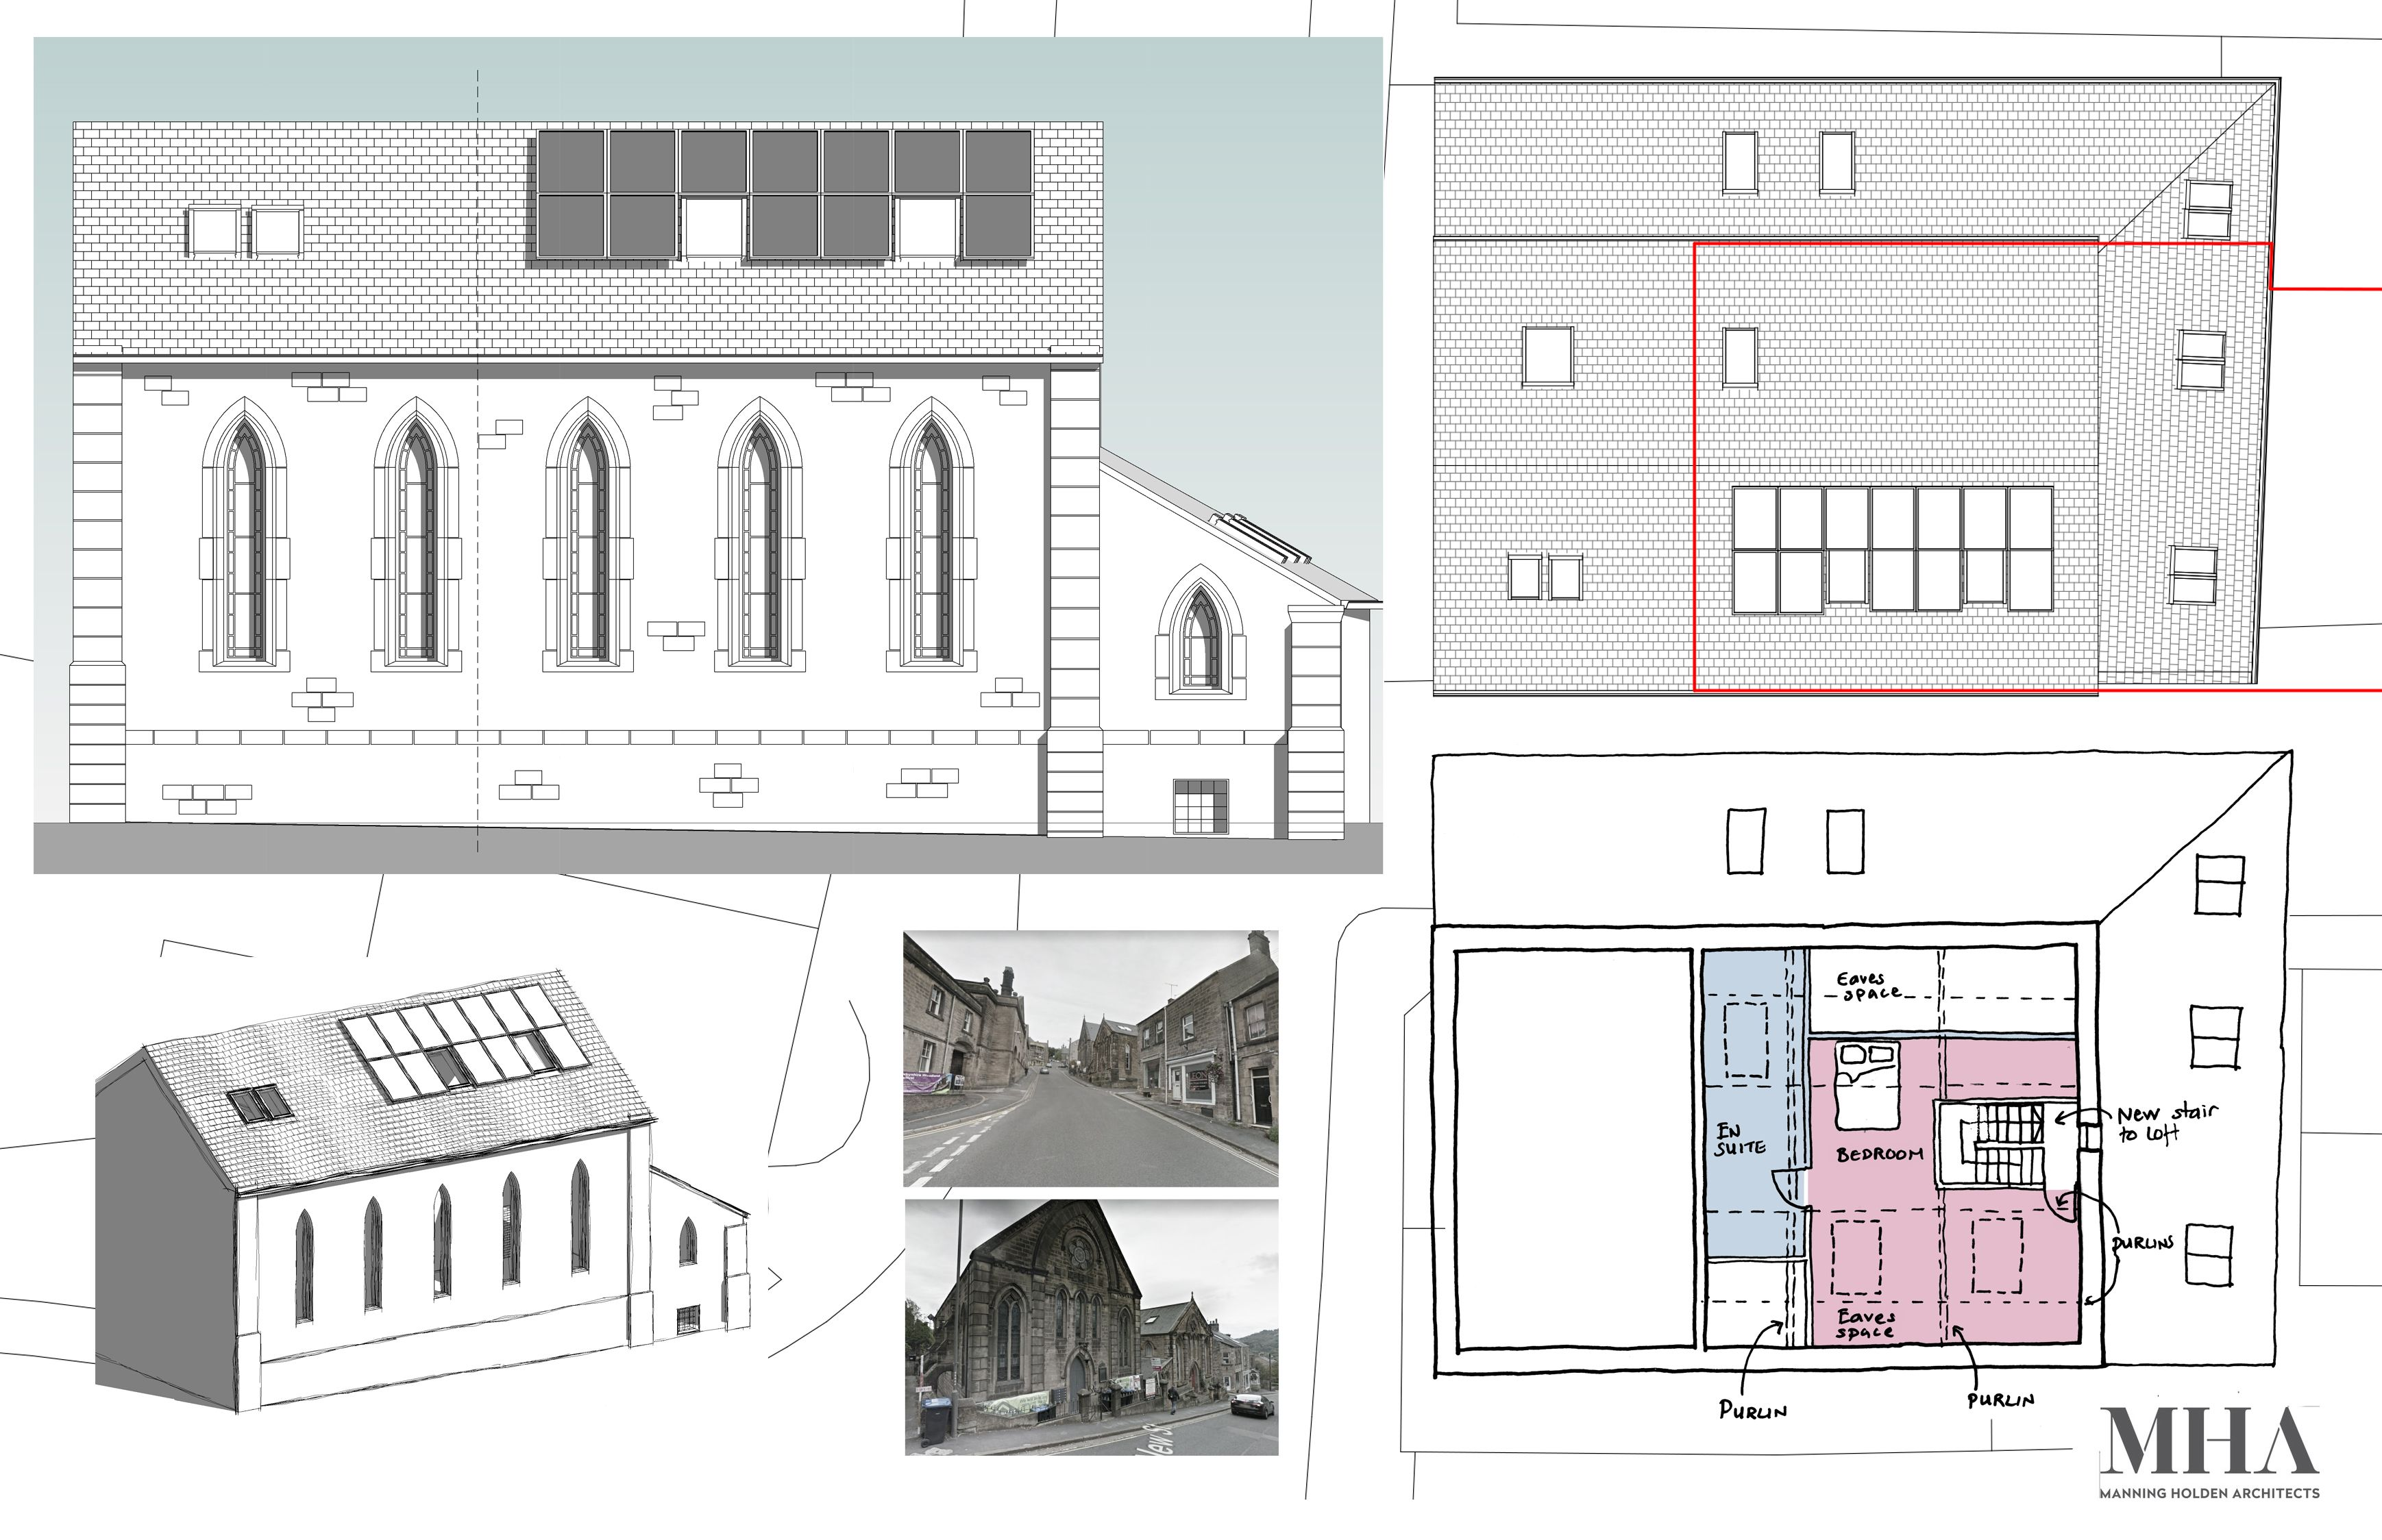 Planning permission granted for Old Sunday School loft conversion in Matlock